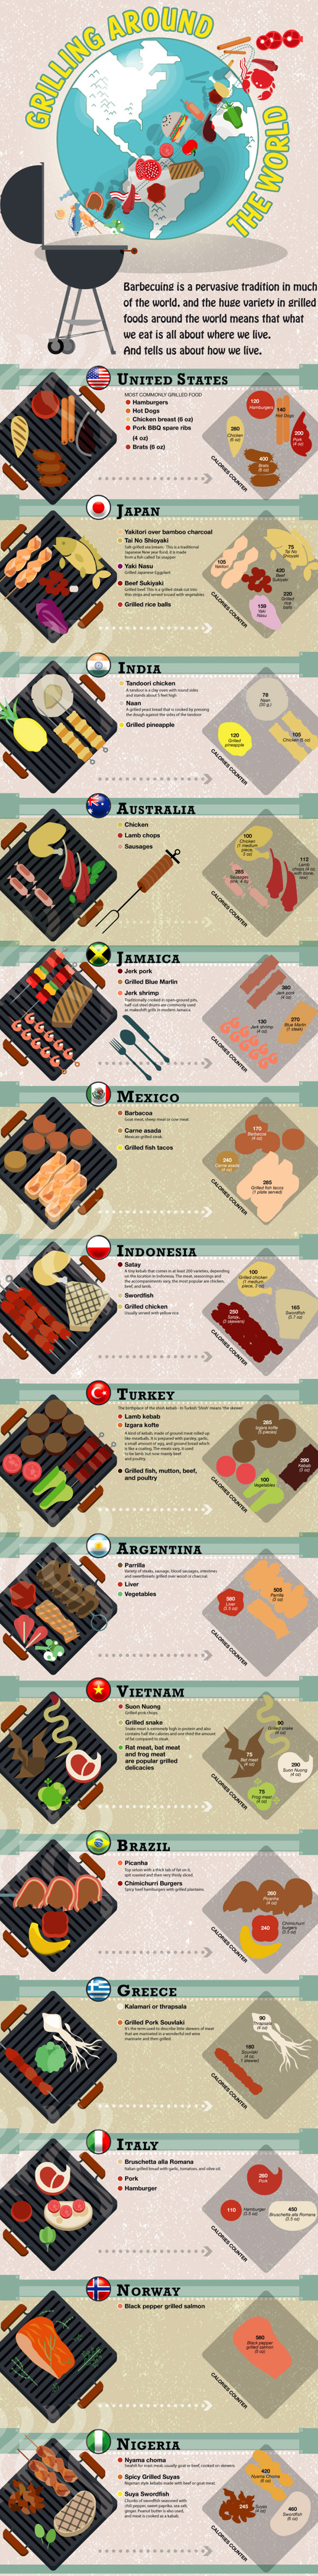 World Grilling Infographic